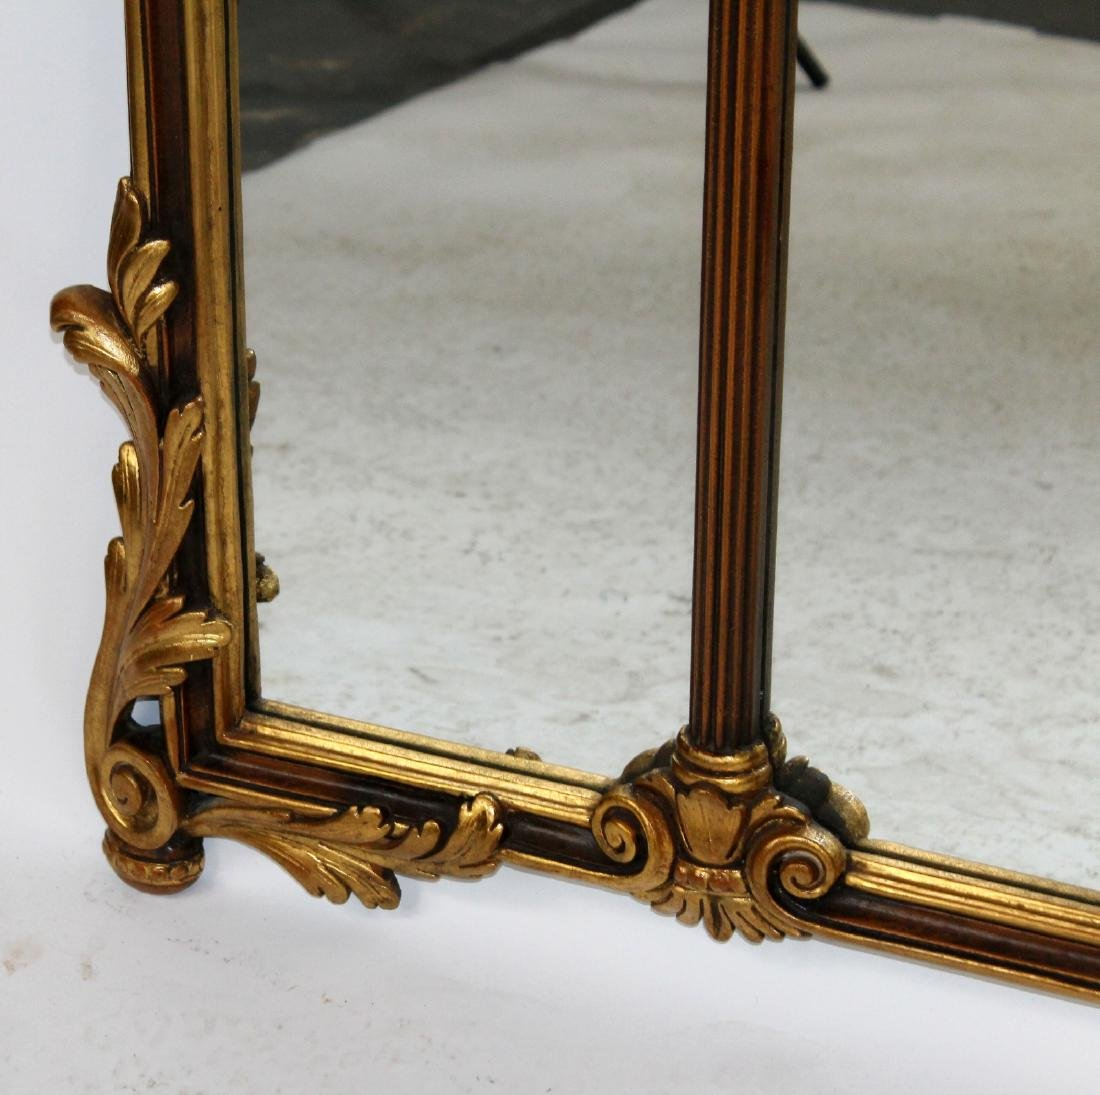 Italian Chippendale style gilt framed mirror - 3